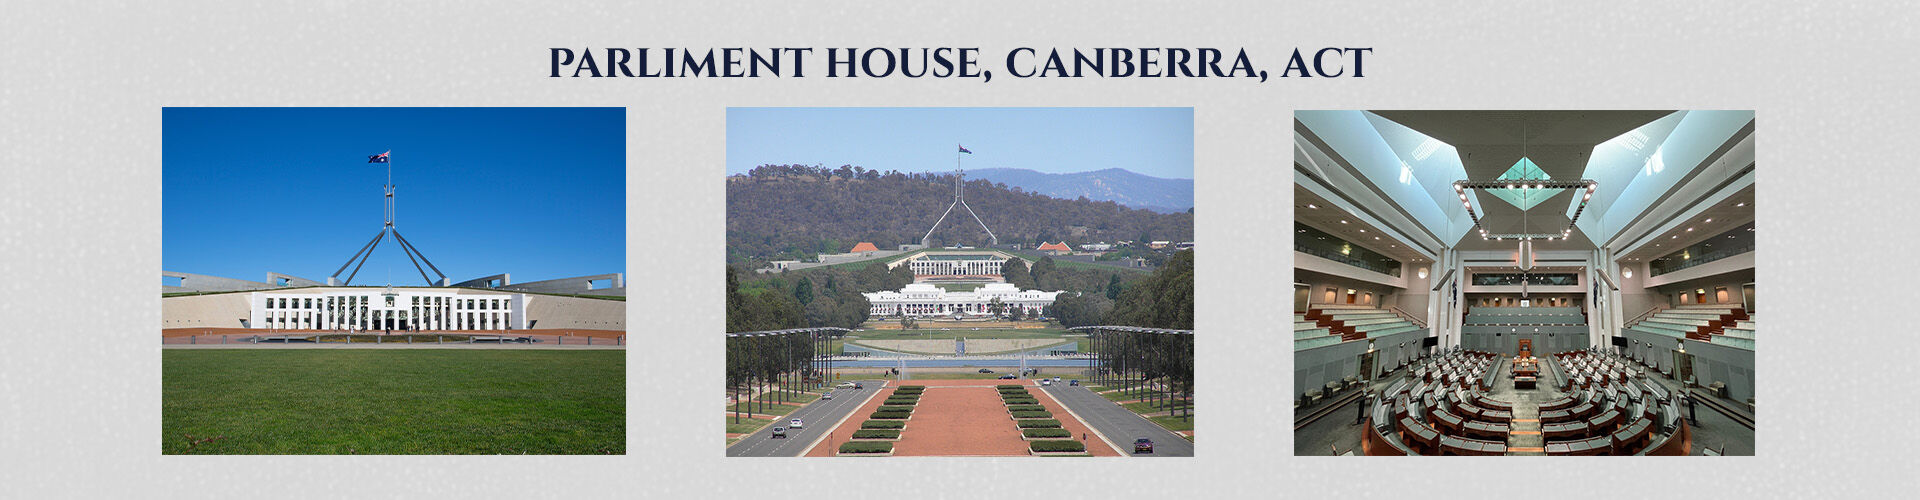 Absent Justice - My Story - Parliament House Canberra